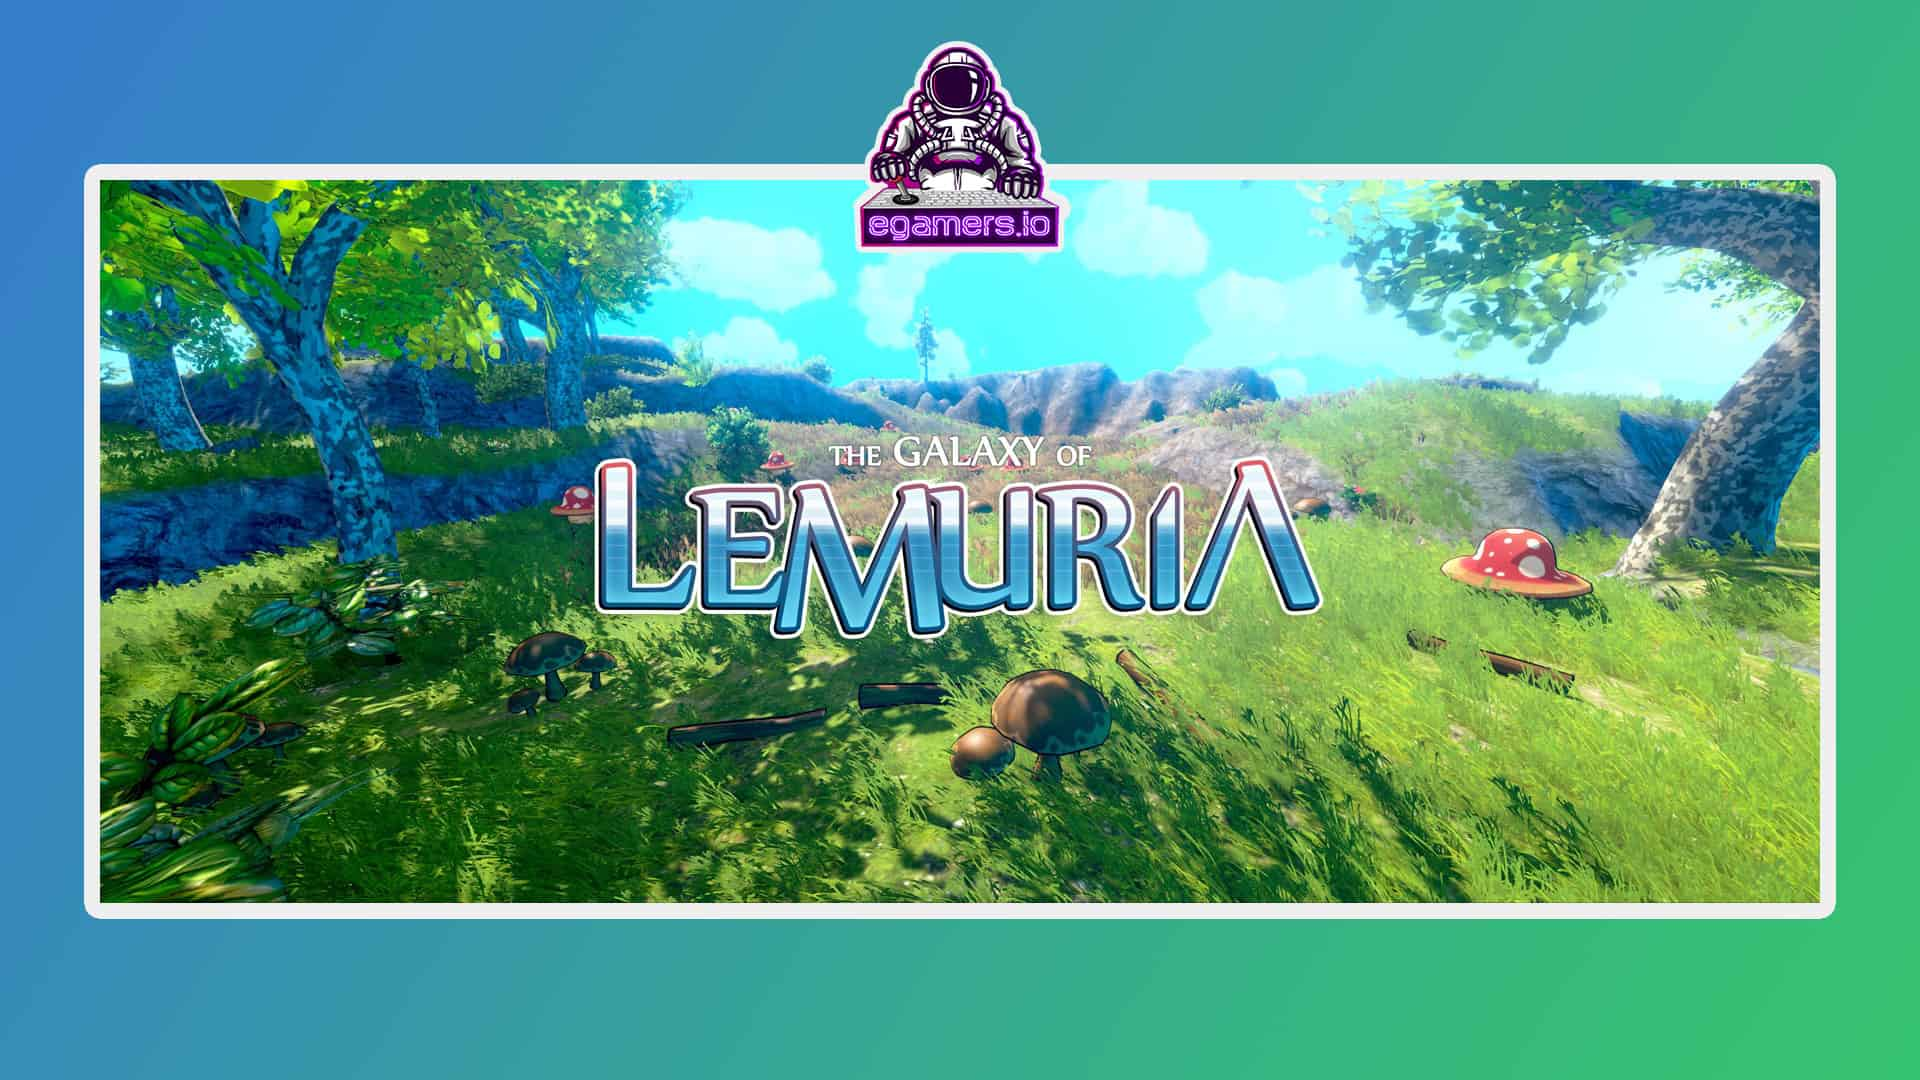 The Galaxy of Lemuria Founders Sale